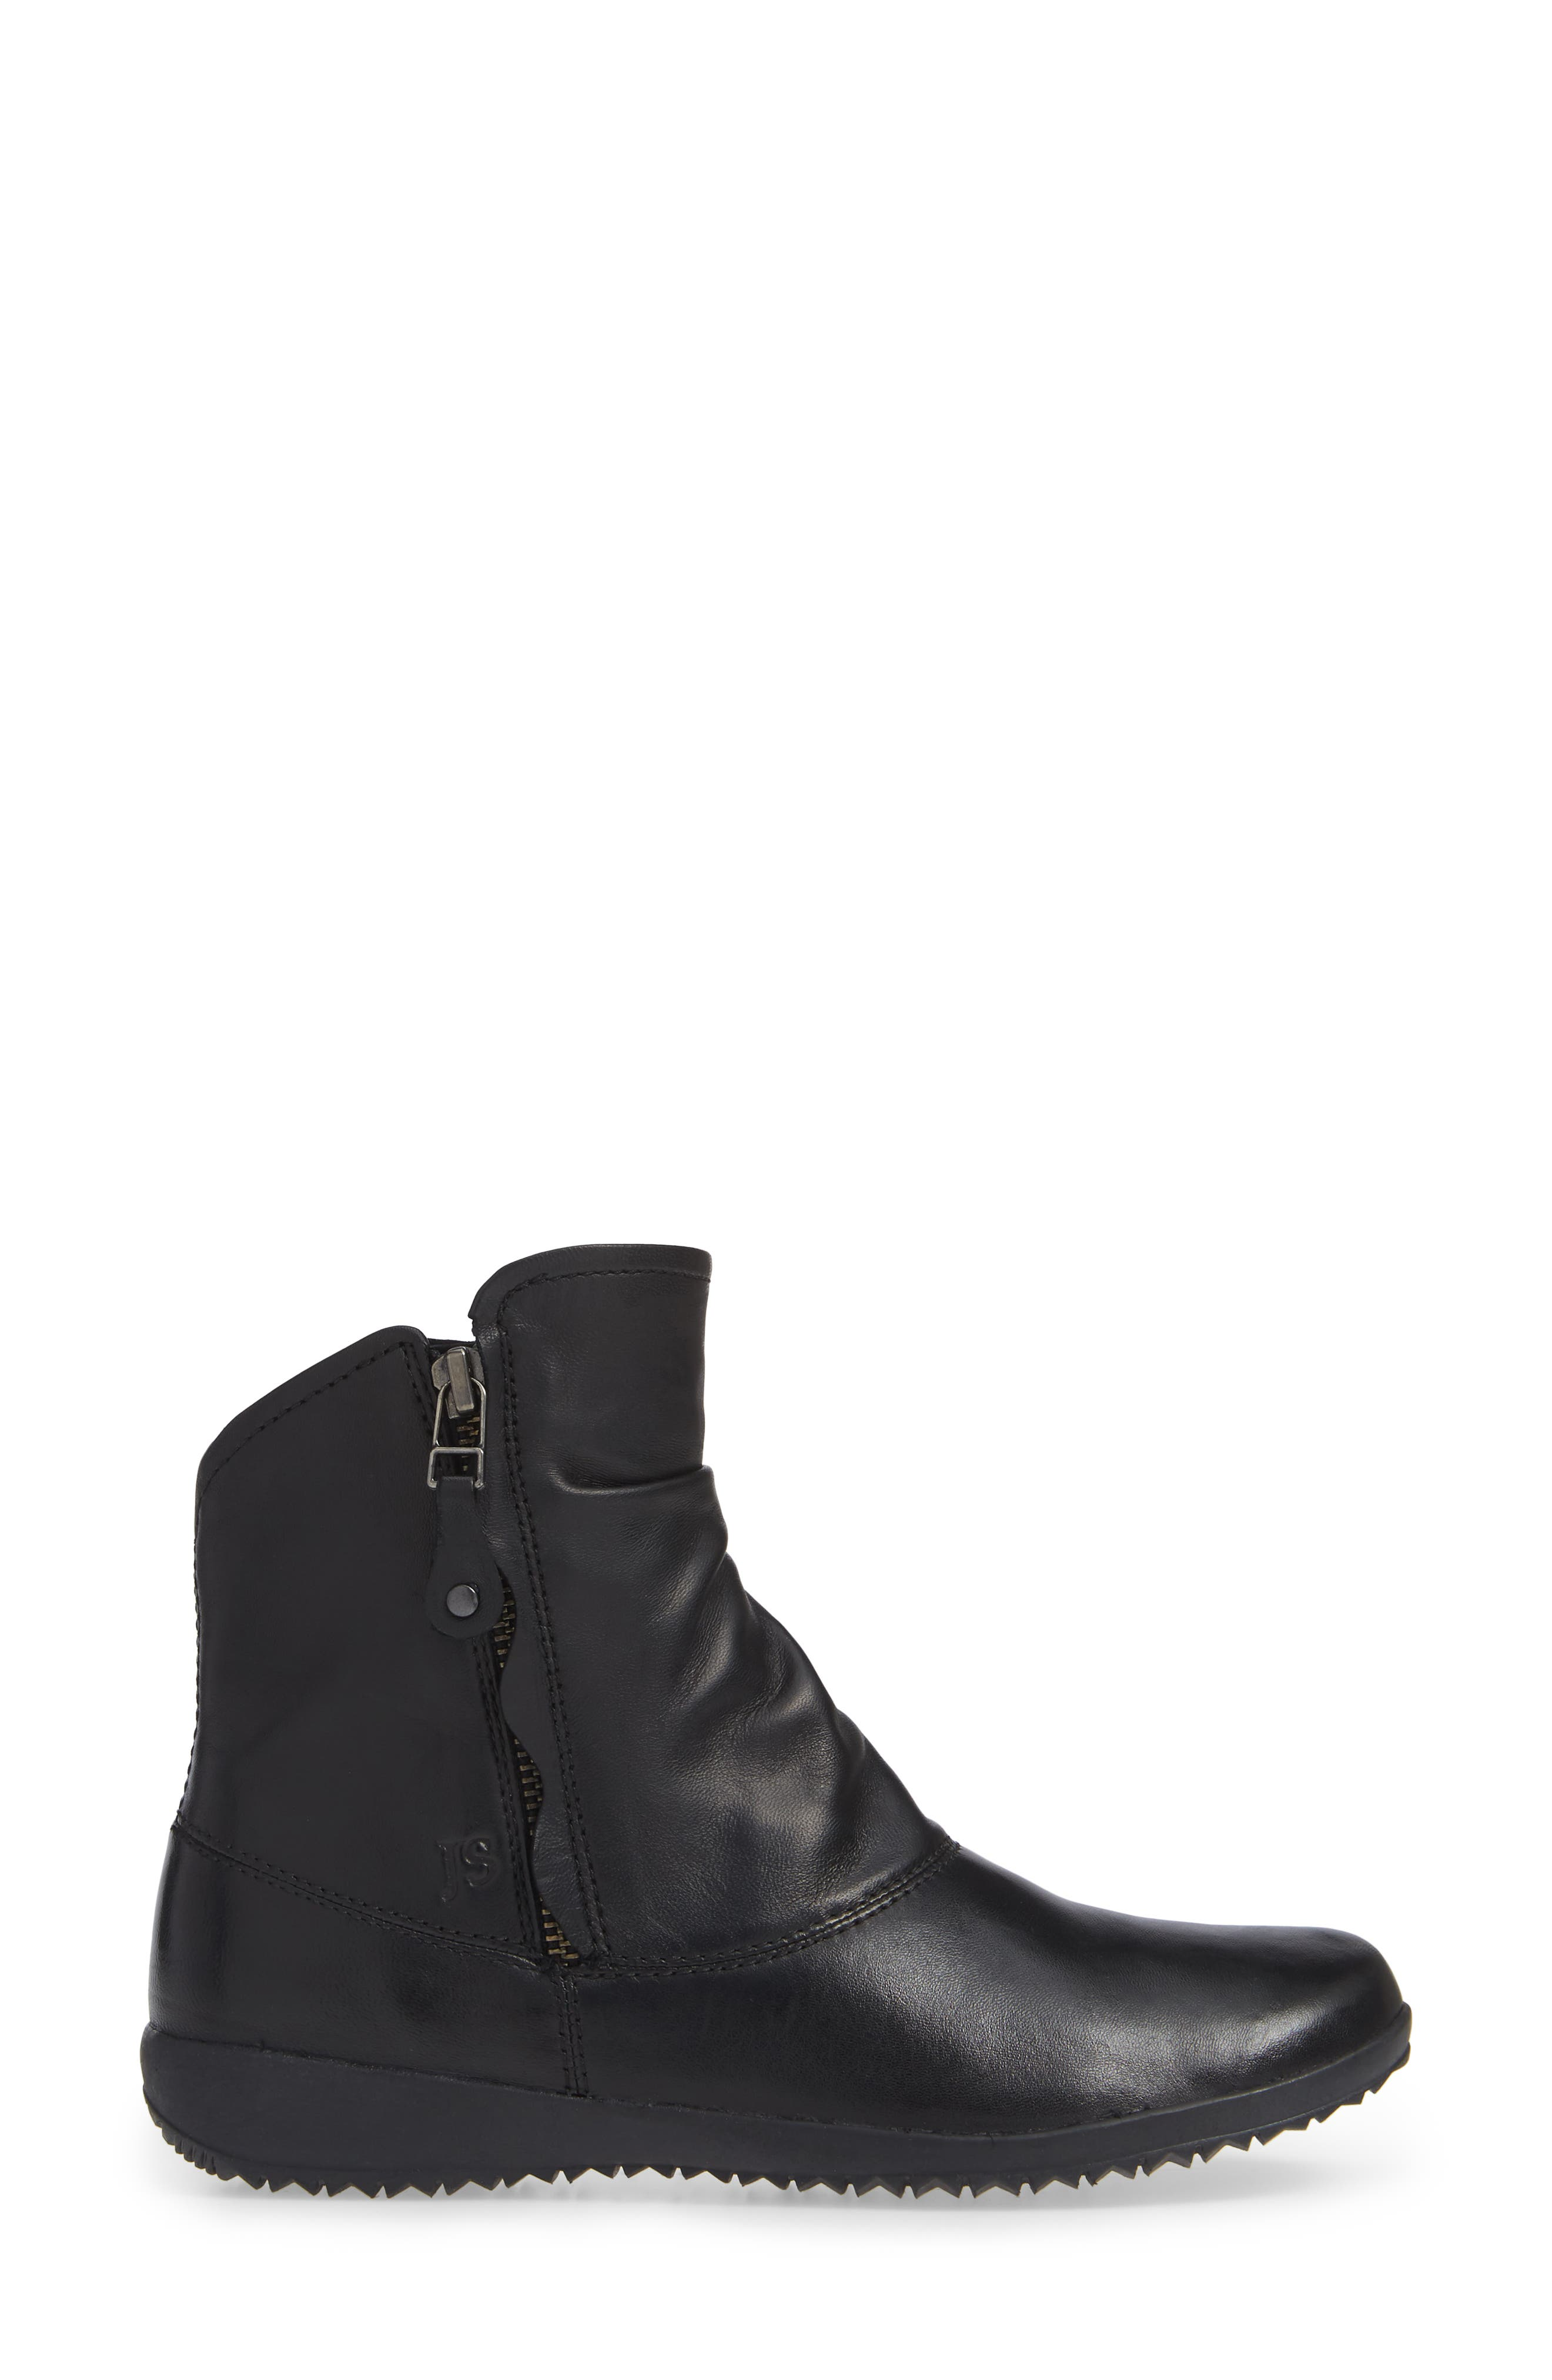 JOSEF SEIBEL,                             Naly 24 Bootie,                             Alternate thumbnail 3, color,                             BLACK LEATHER